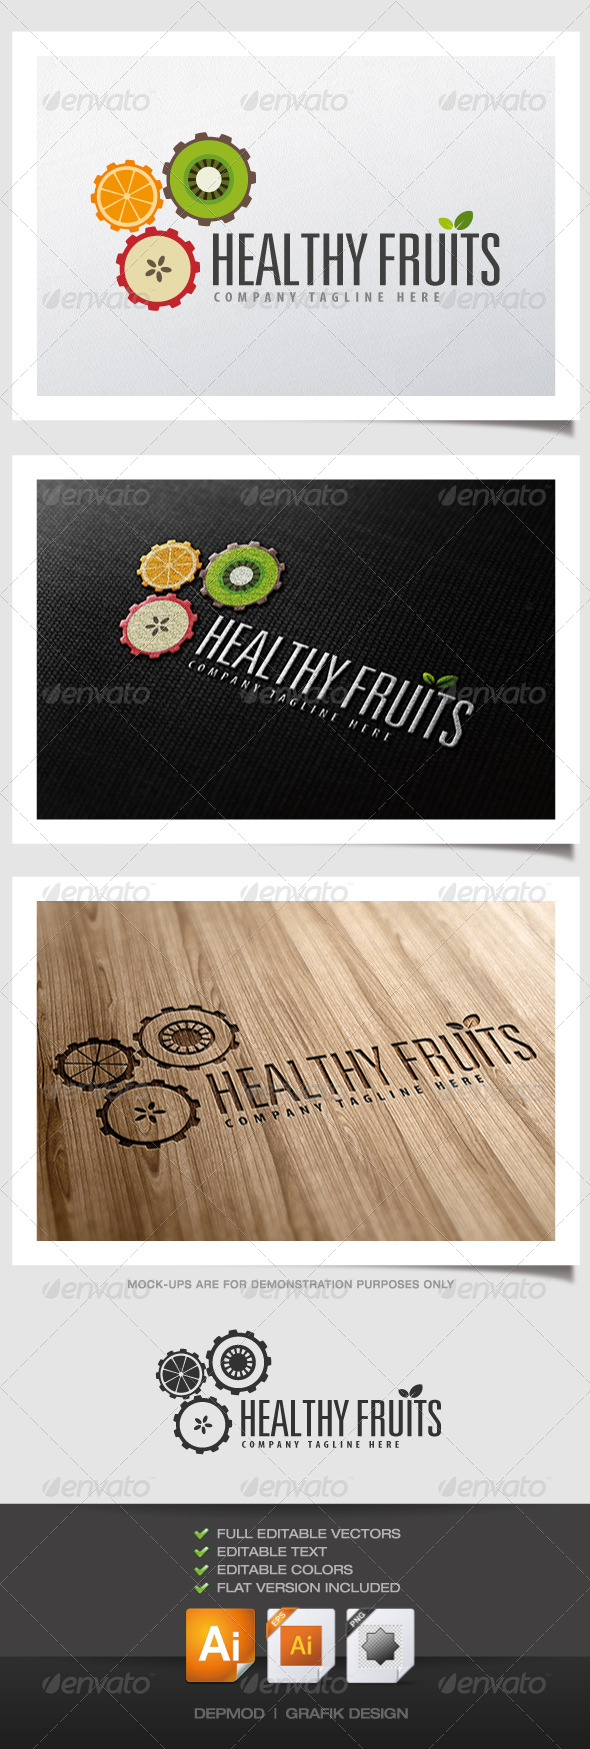 GraphicRiver Healthy Fruits logo 4374079